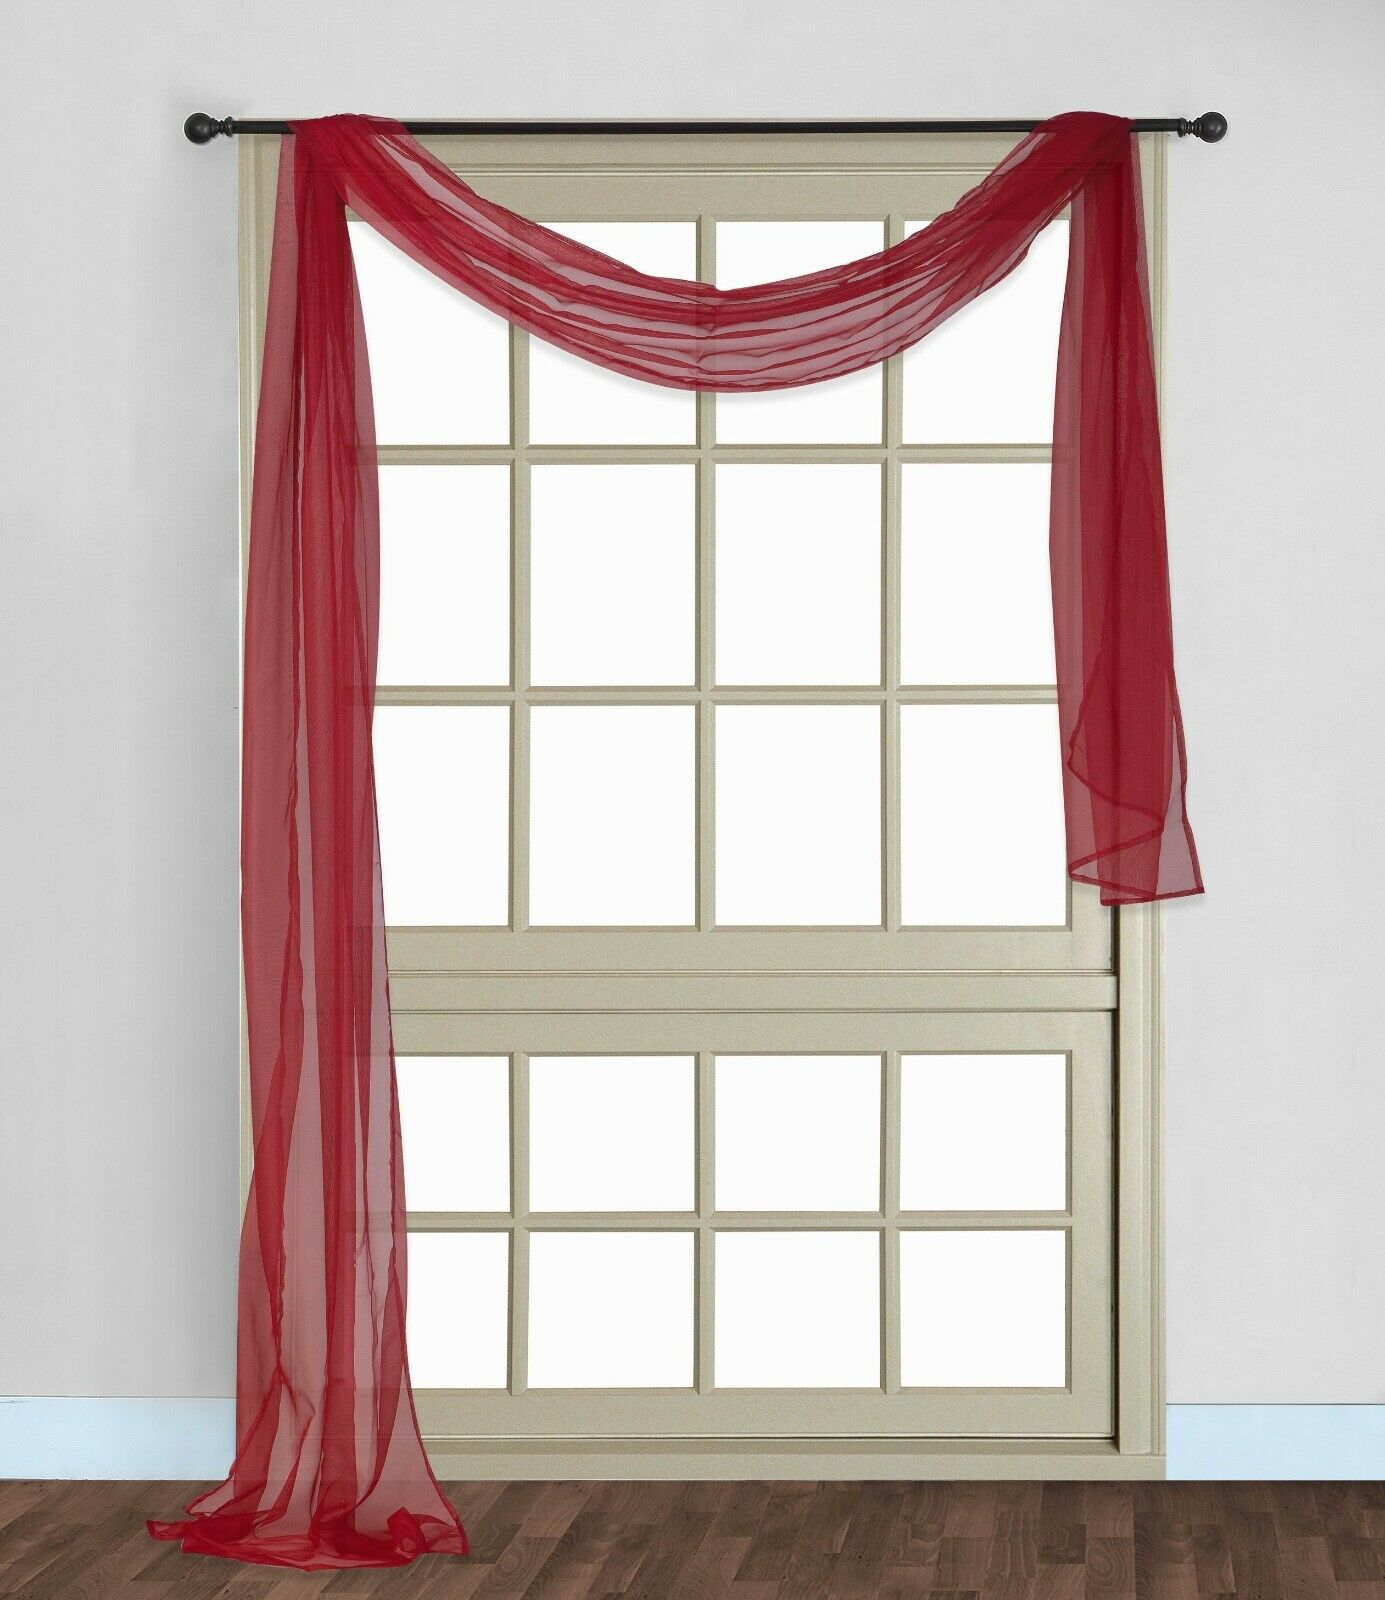 37 X 216, Red Decotex Premium Quality Sheer Voile Scarf Valance for Home /& Event Designs